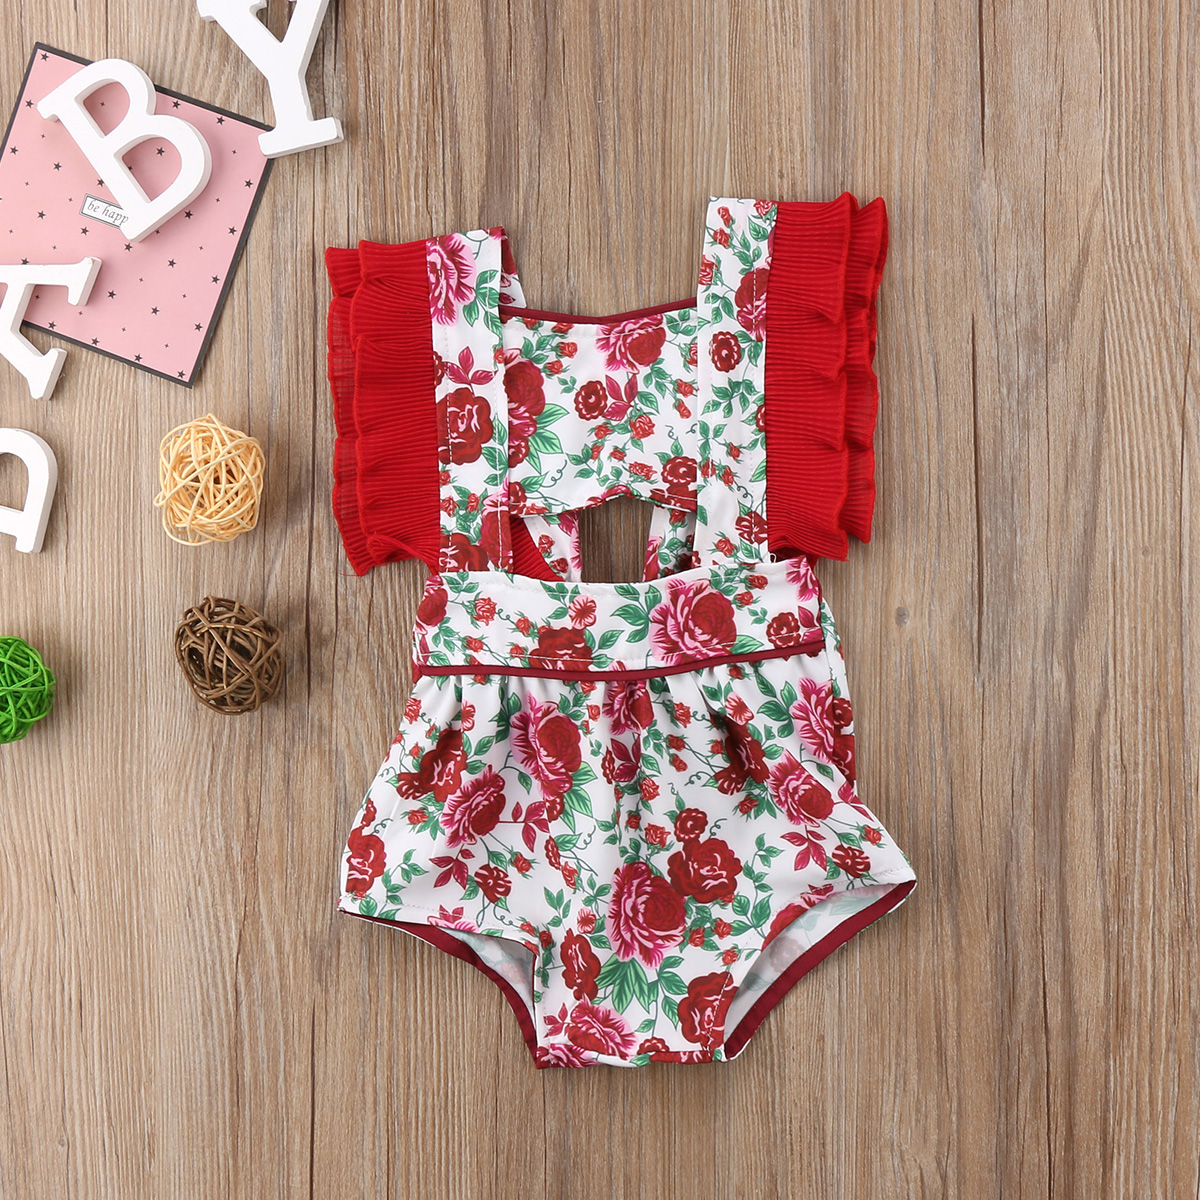 Newborn Baby Girl Floral Romper Jumpsuit Bandage Clothes Outfit Summer Flower Rompers For Girls